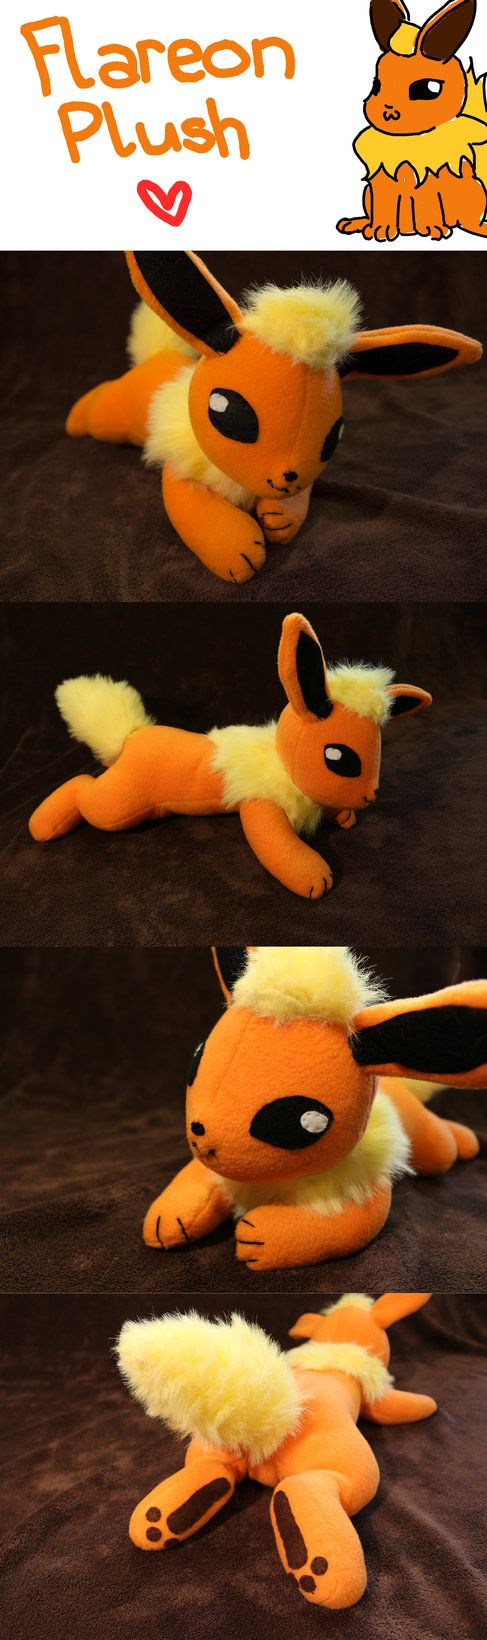 I'm finally done! It took me almost a week to finish, but it's done My Flareon plush... It was the first time that I made my own pattern and it took me some time until it turned out how I wanted it...